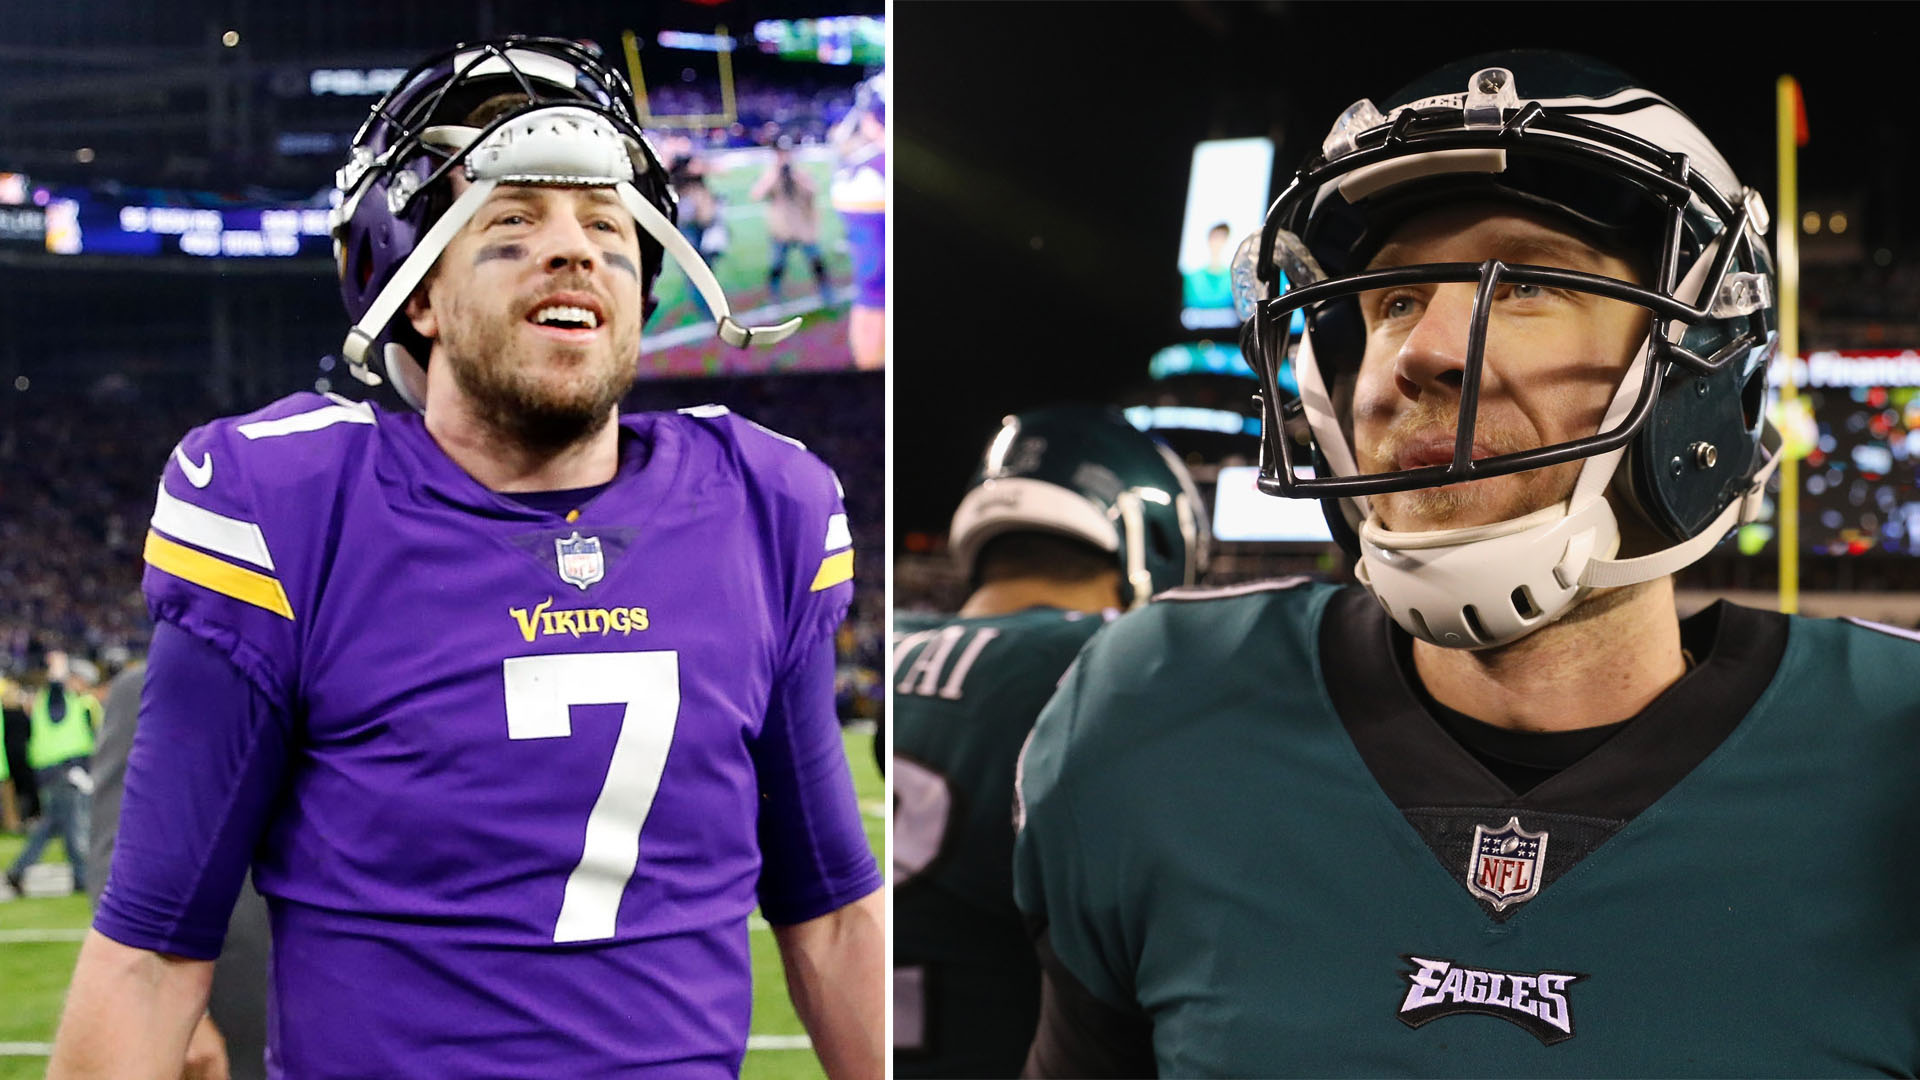 Eagles must stay aggressive against Vikings